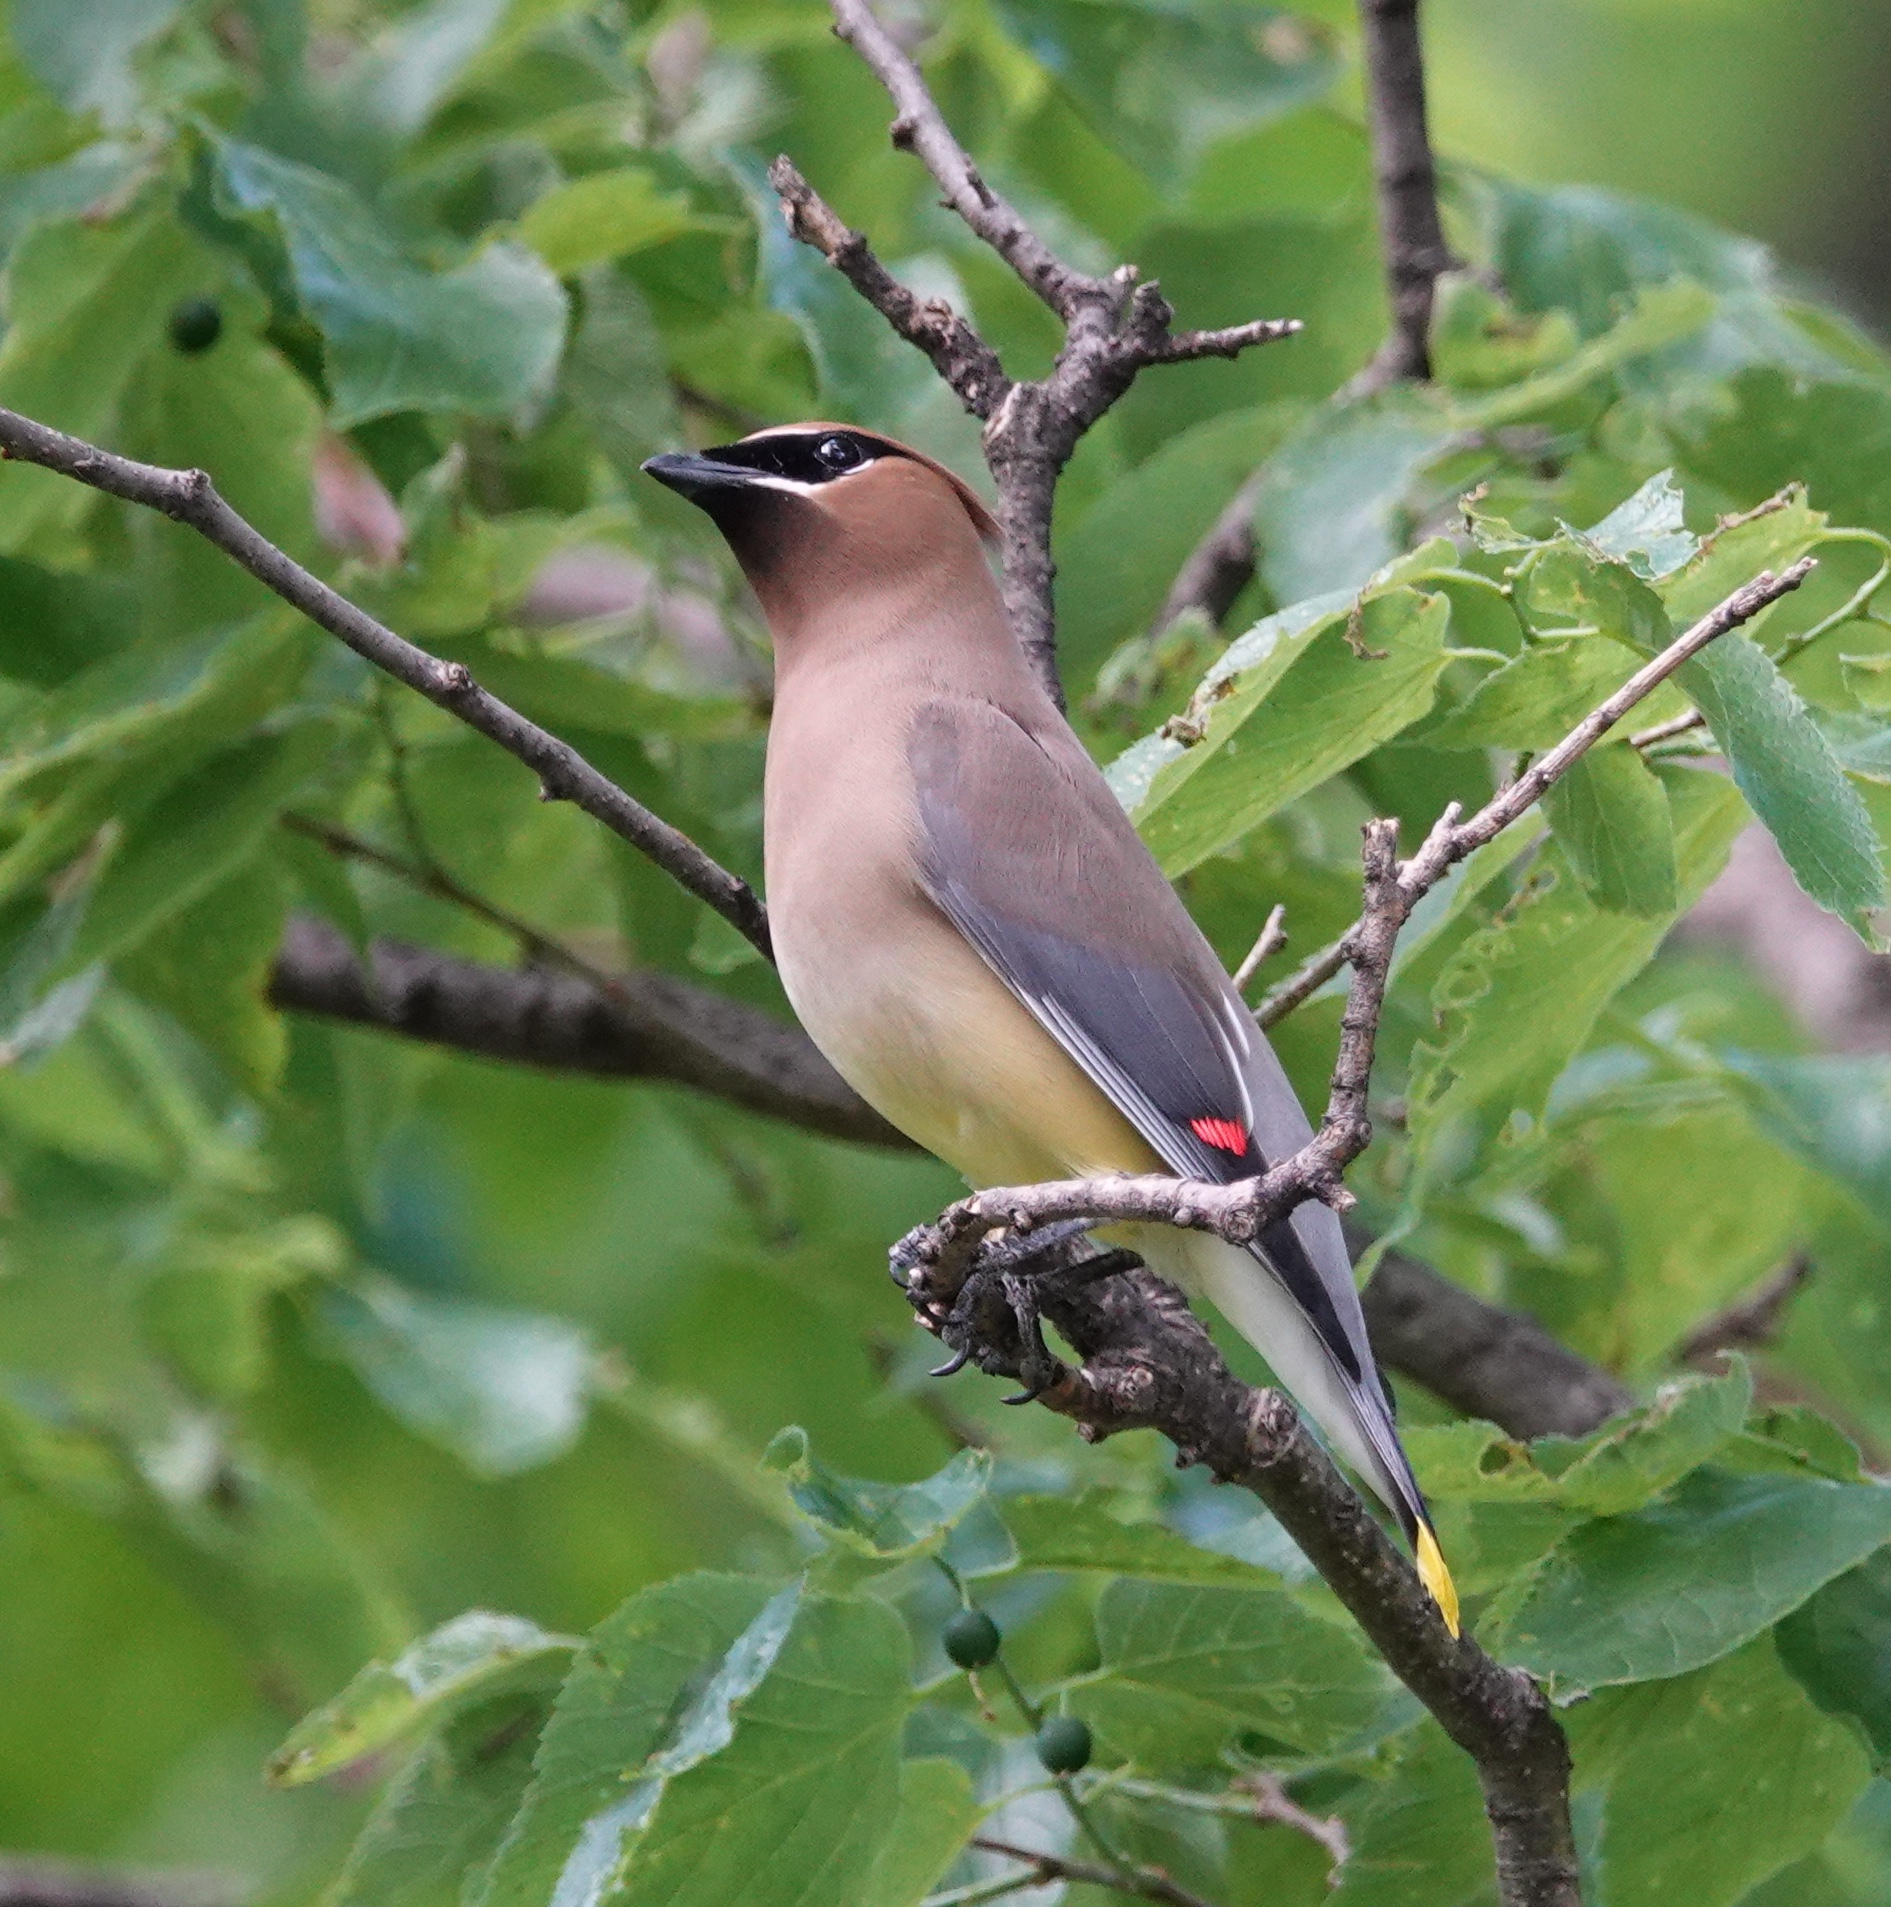 It's always a plumb pleasure for me to see a cedar waxwing.